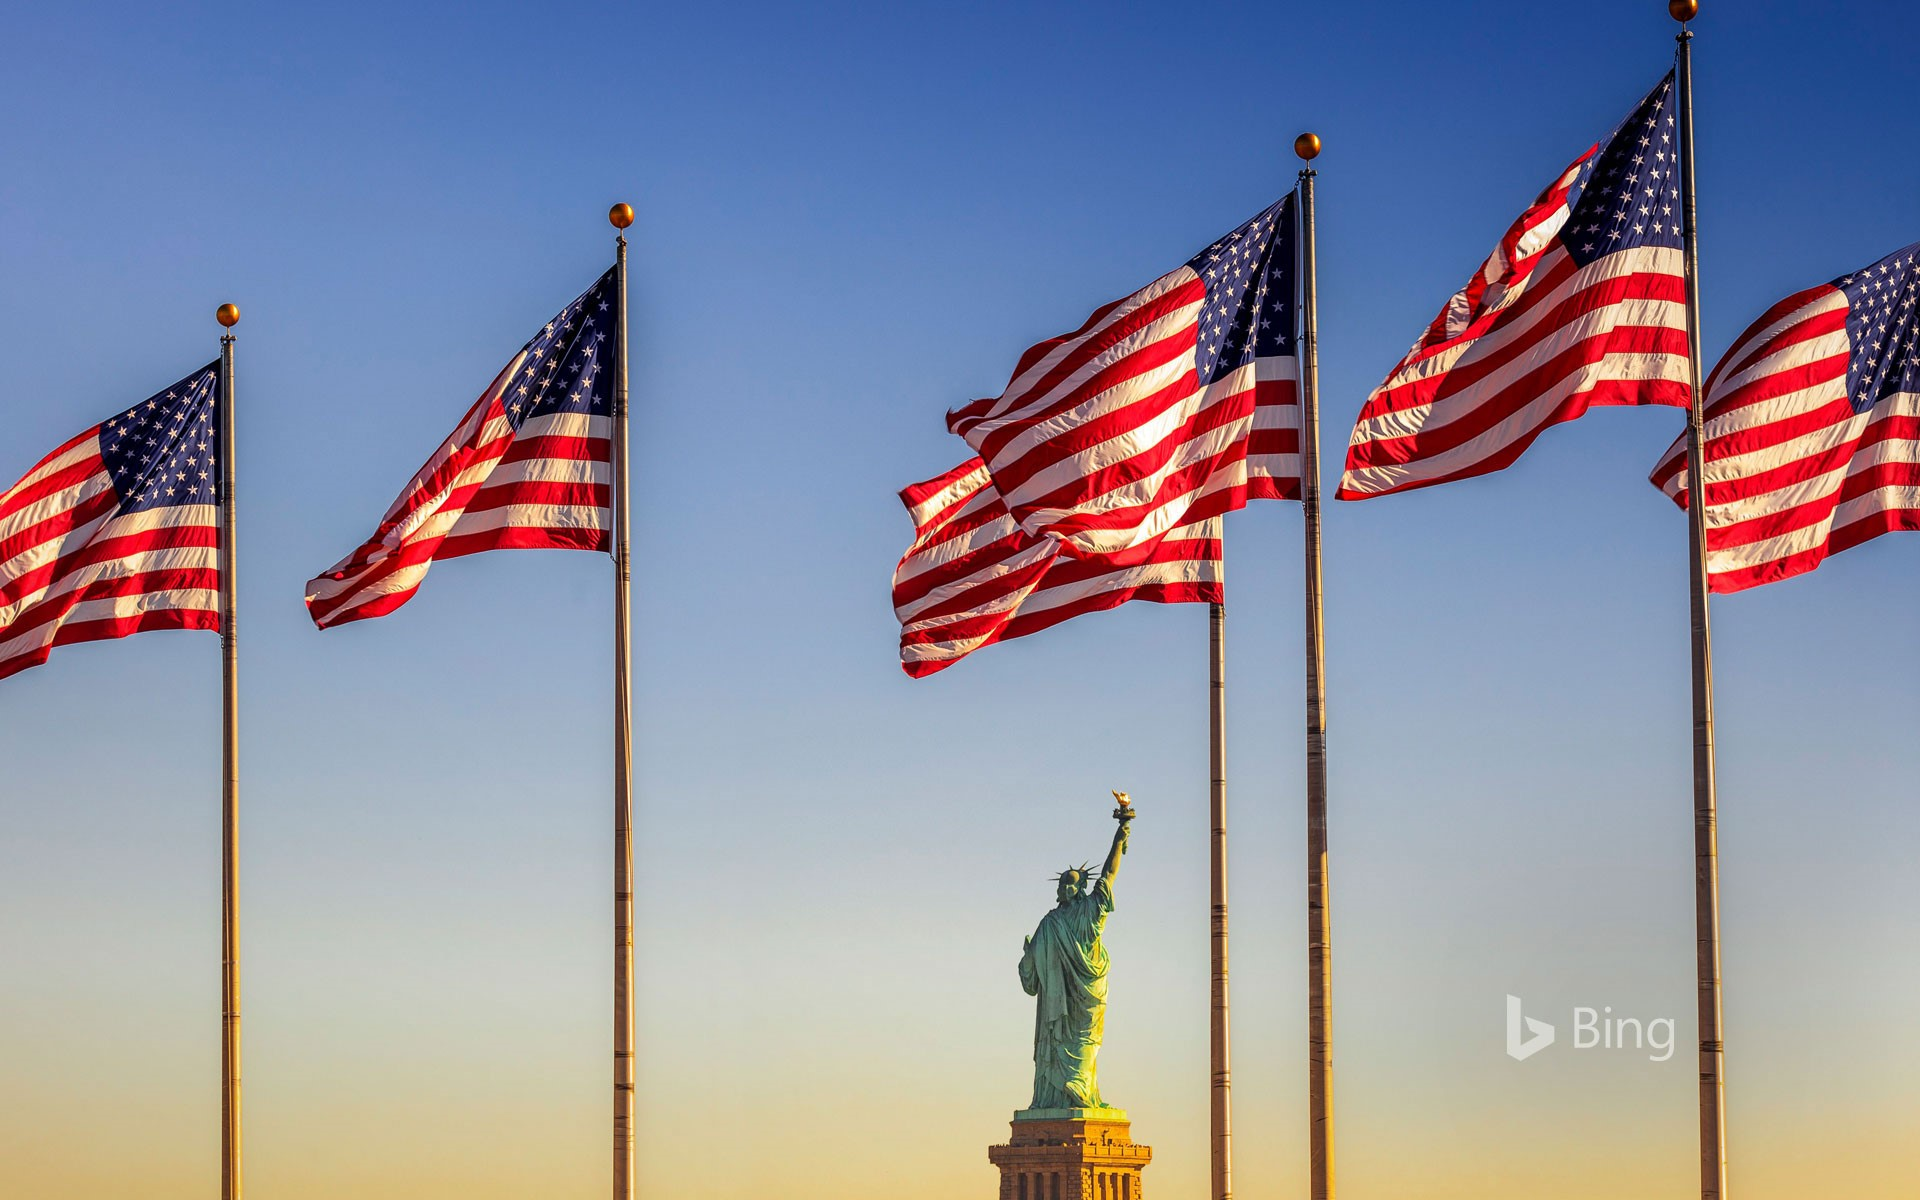 US Flag Plaza at Liberty State Park in Jersey City, New Jersey